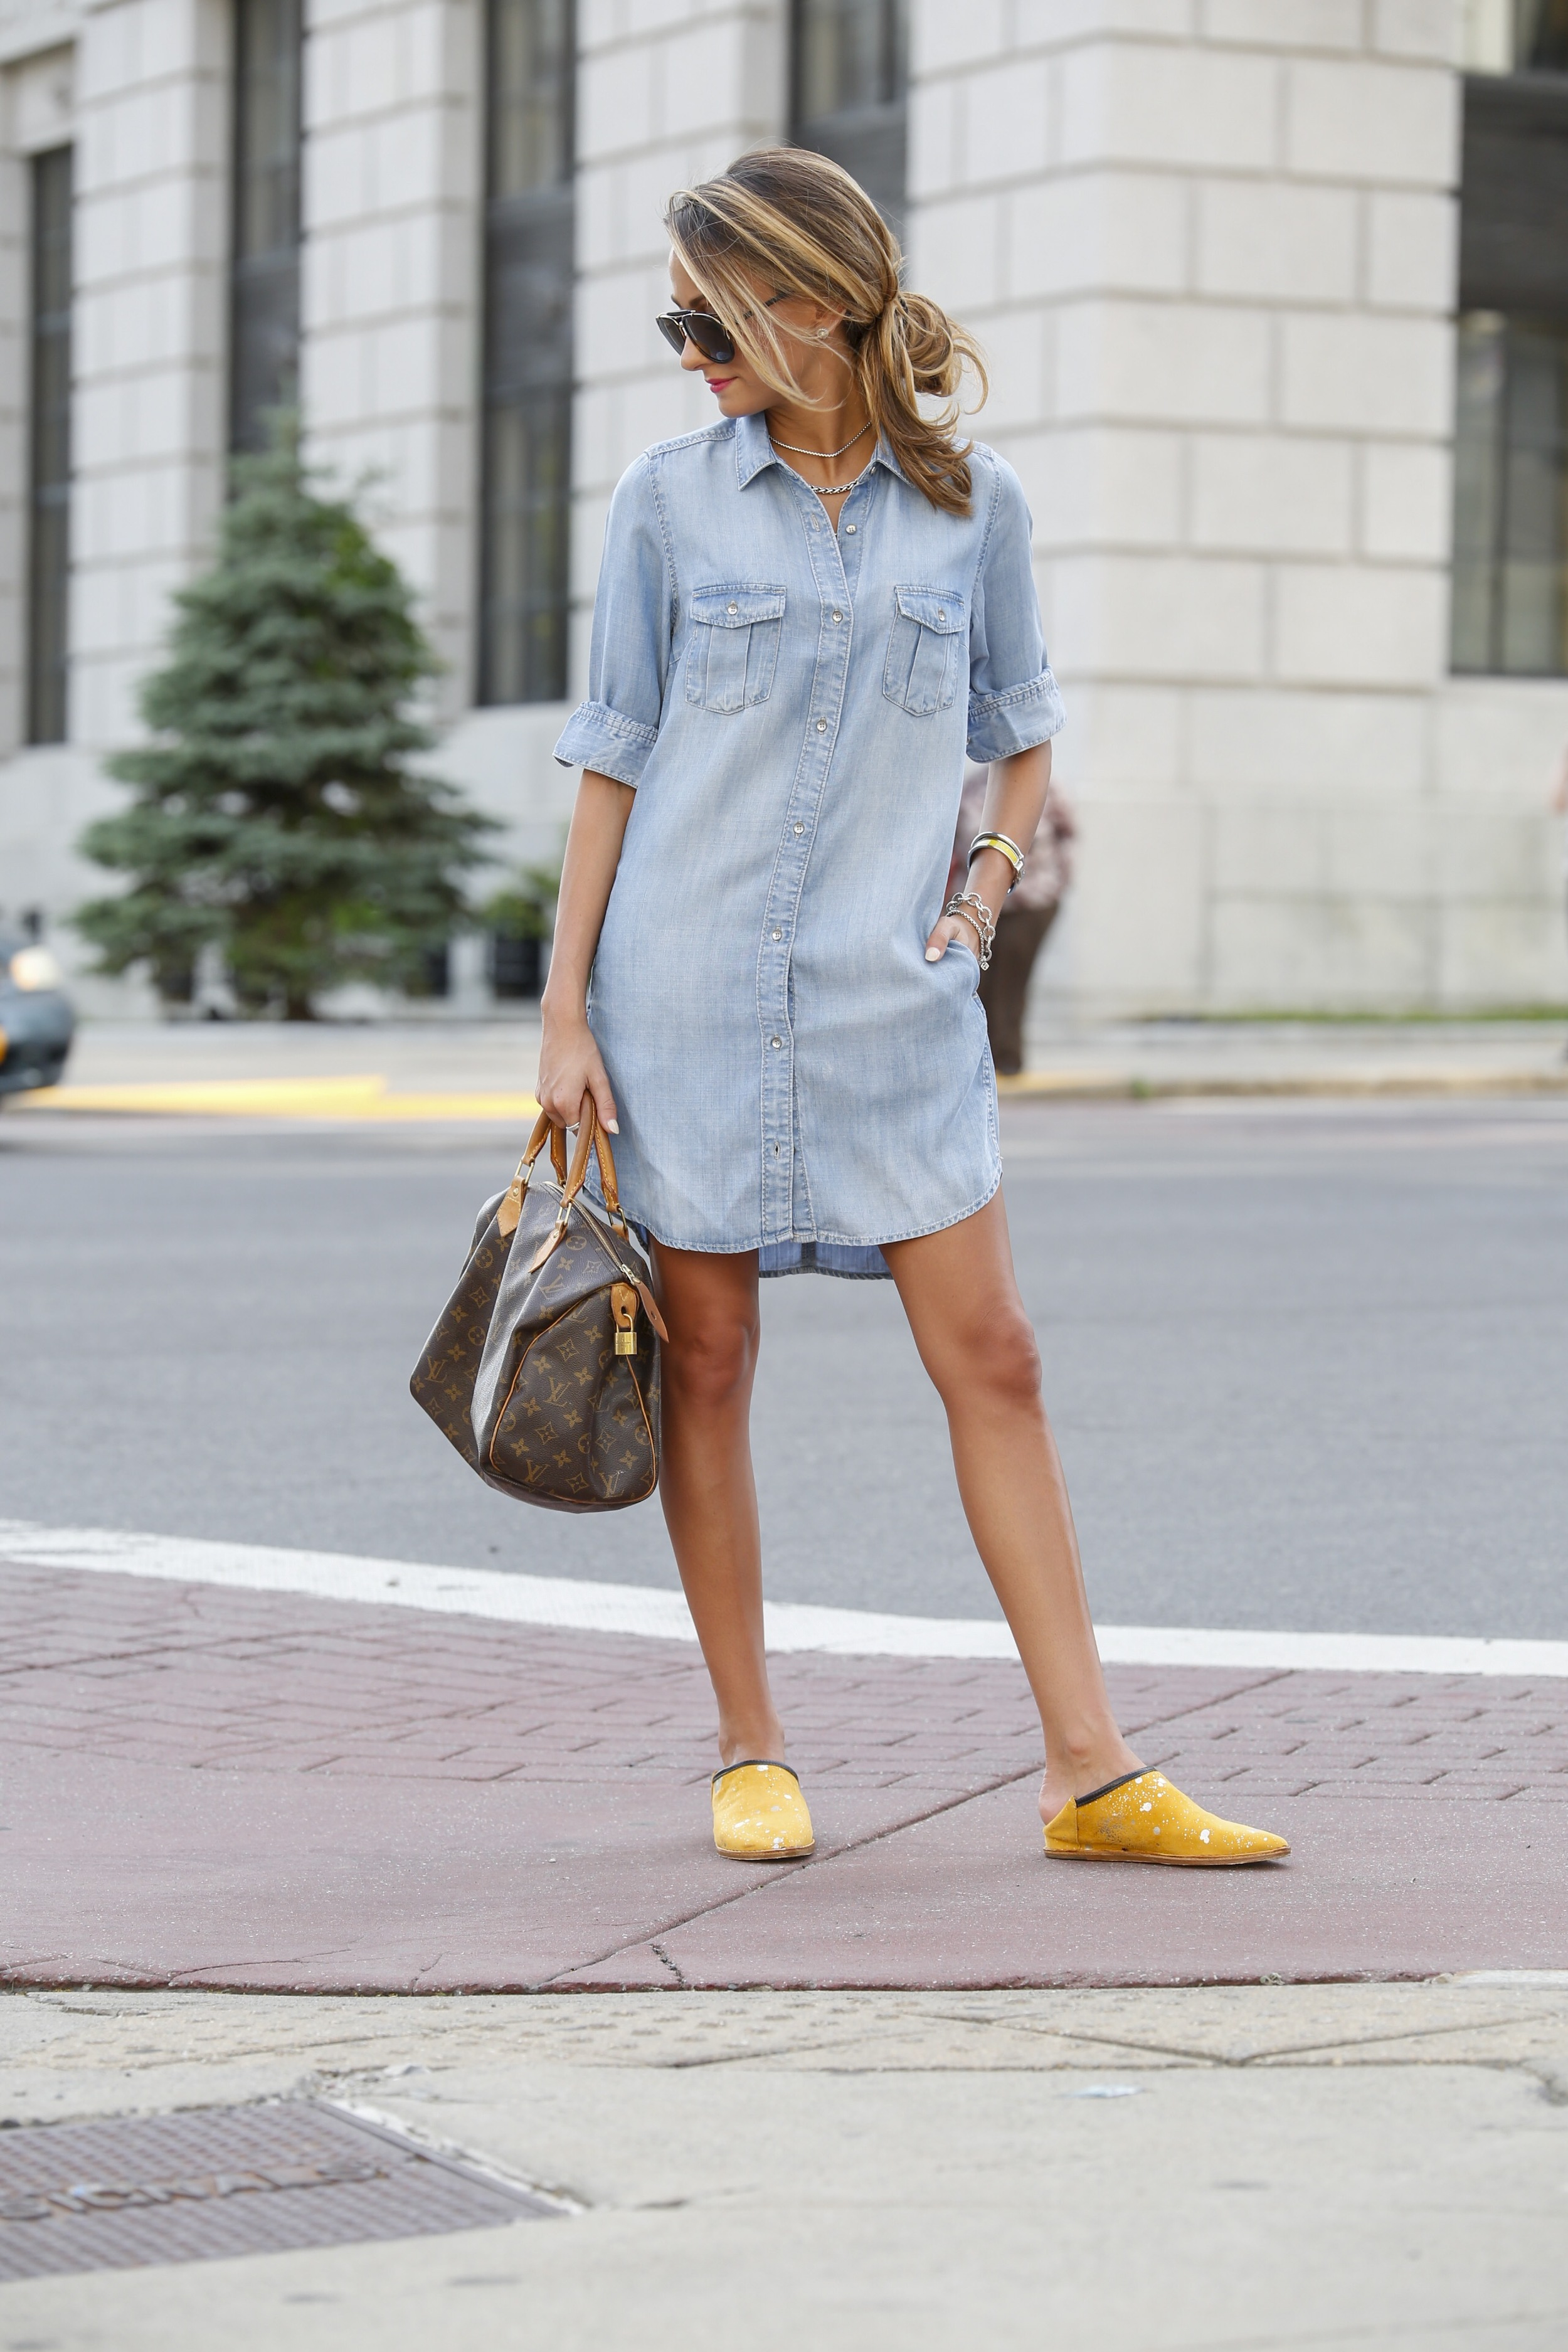 h&M breakthrough blogger of the year seen in a chambray dress